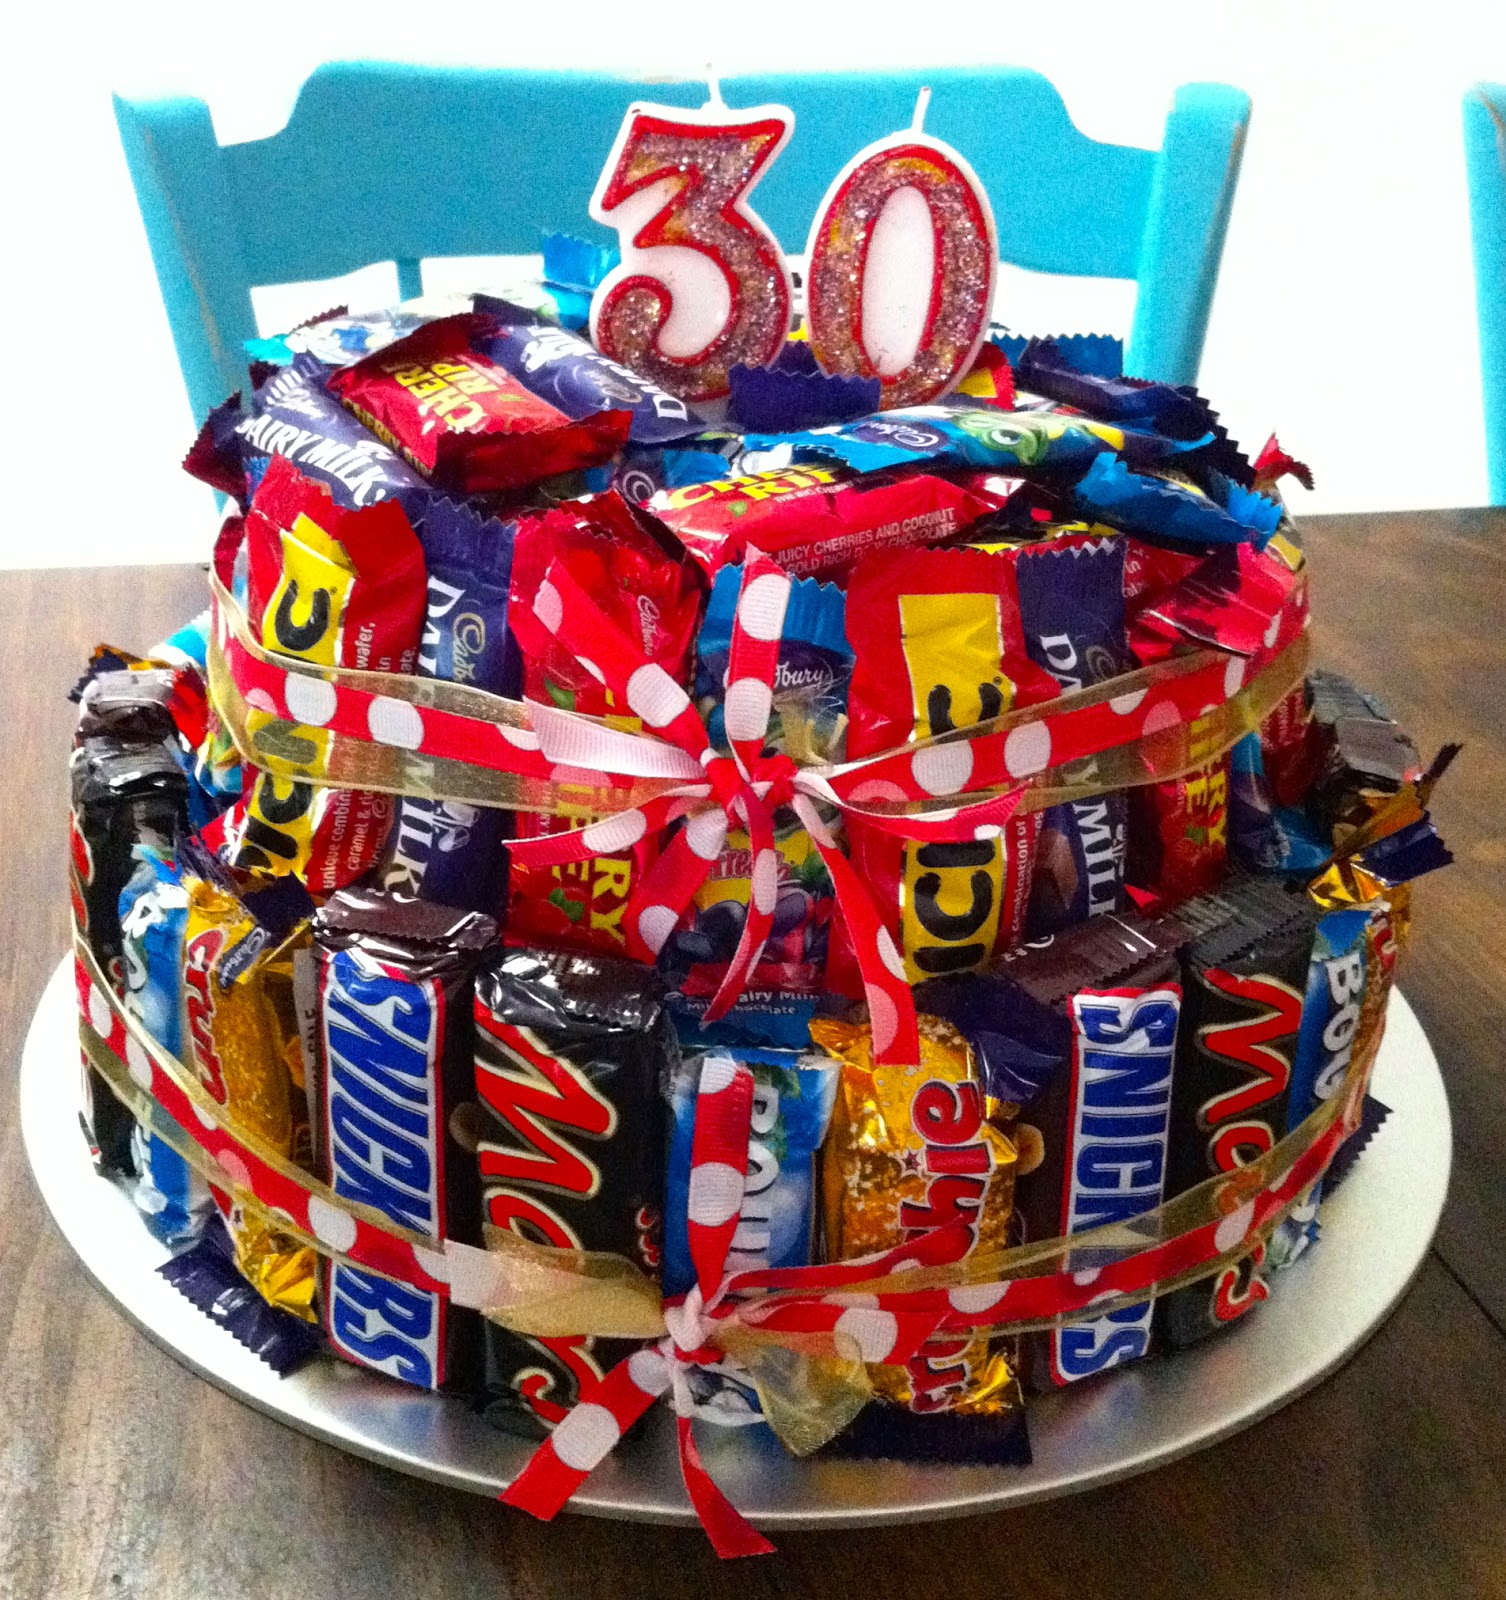 ü Ei Torte Kinderschokolade Giggleberry Creations Chocolate Bar Chocolate 39cake 39